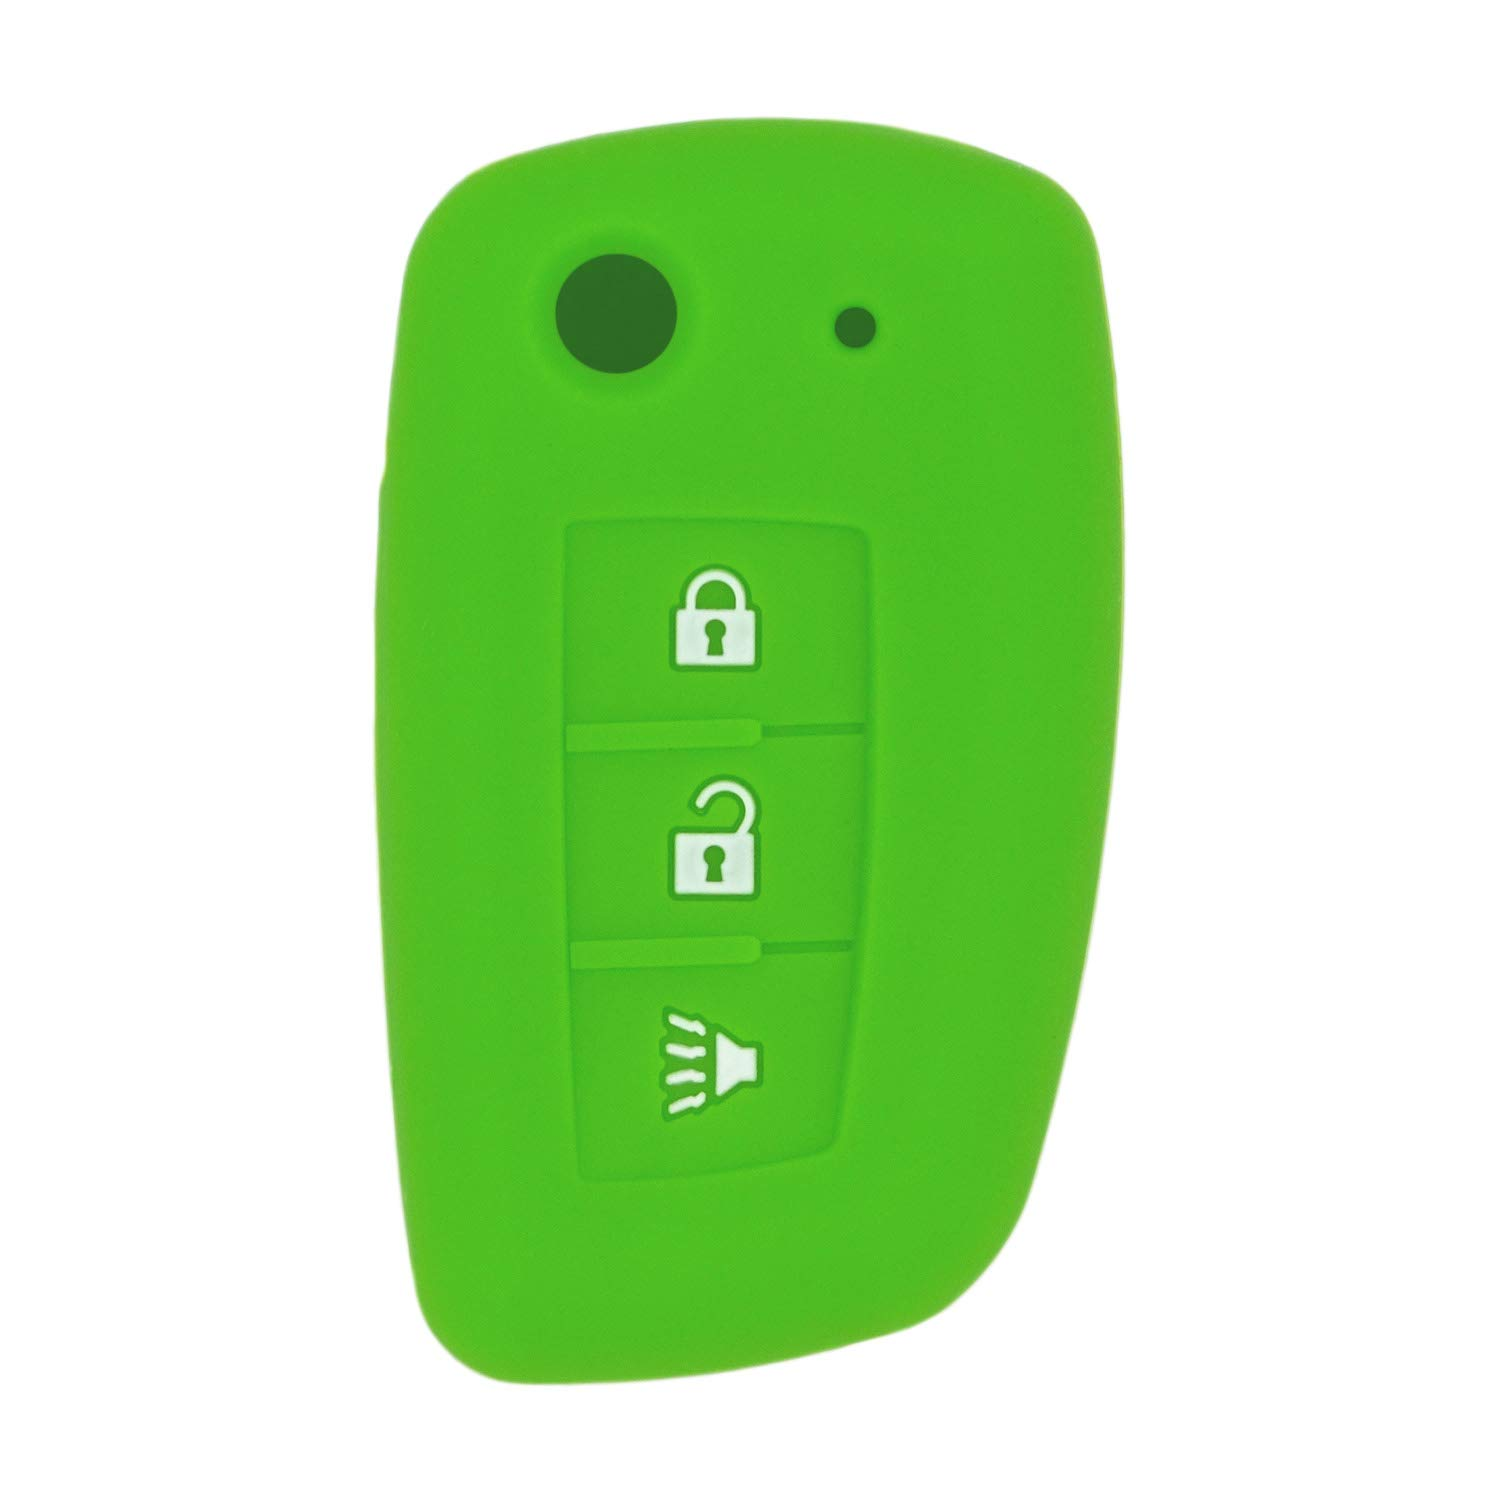 QualityKeylessPlus Protective Silicone Rubber Keyless Entry Remote Fob Case Skin Cover for select 4 Button Nissan Remotes FCC ID CWTWB1G767